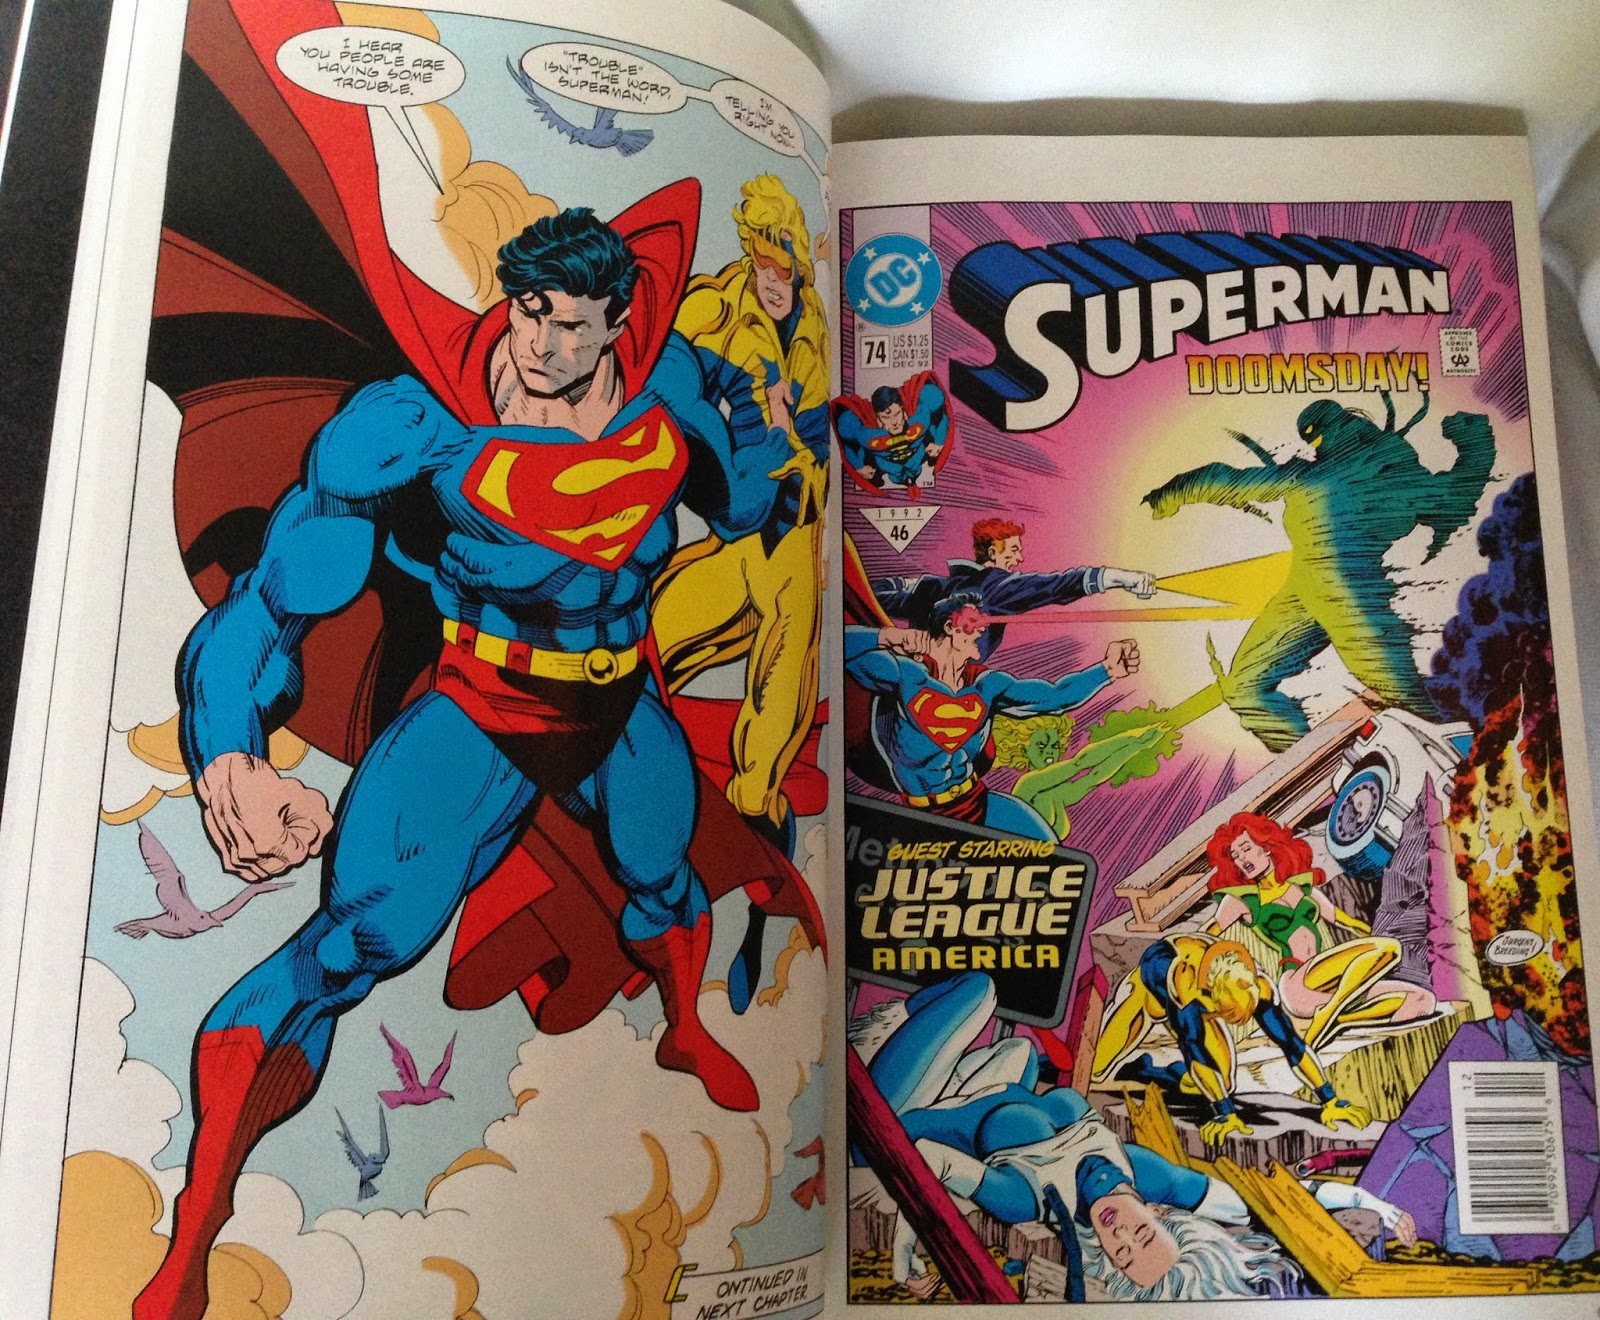 sperman essay As a child my favorite superhero was superman i read the comics, awed at christopher reeve and even.